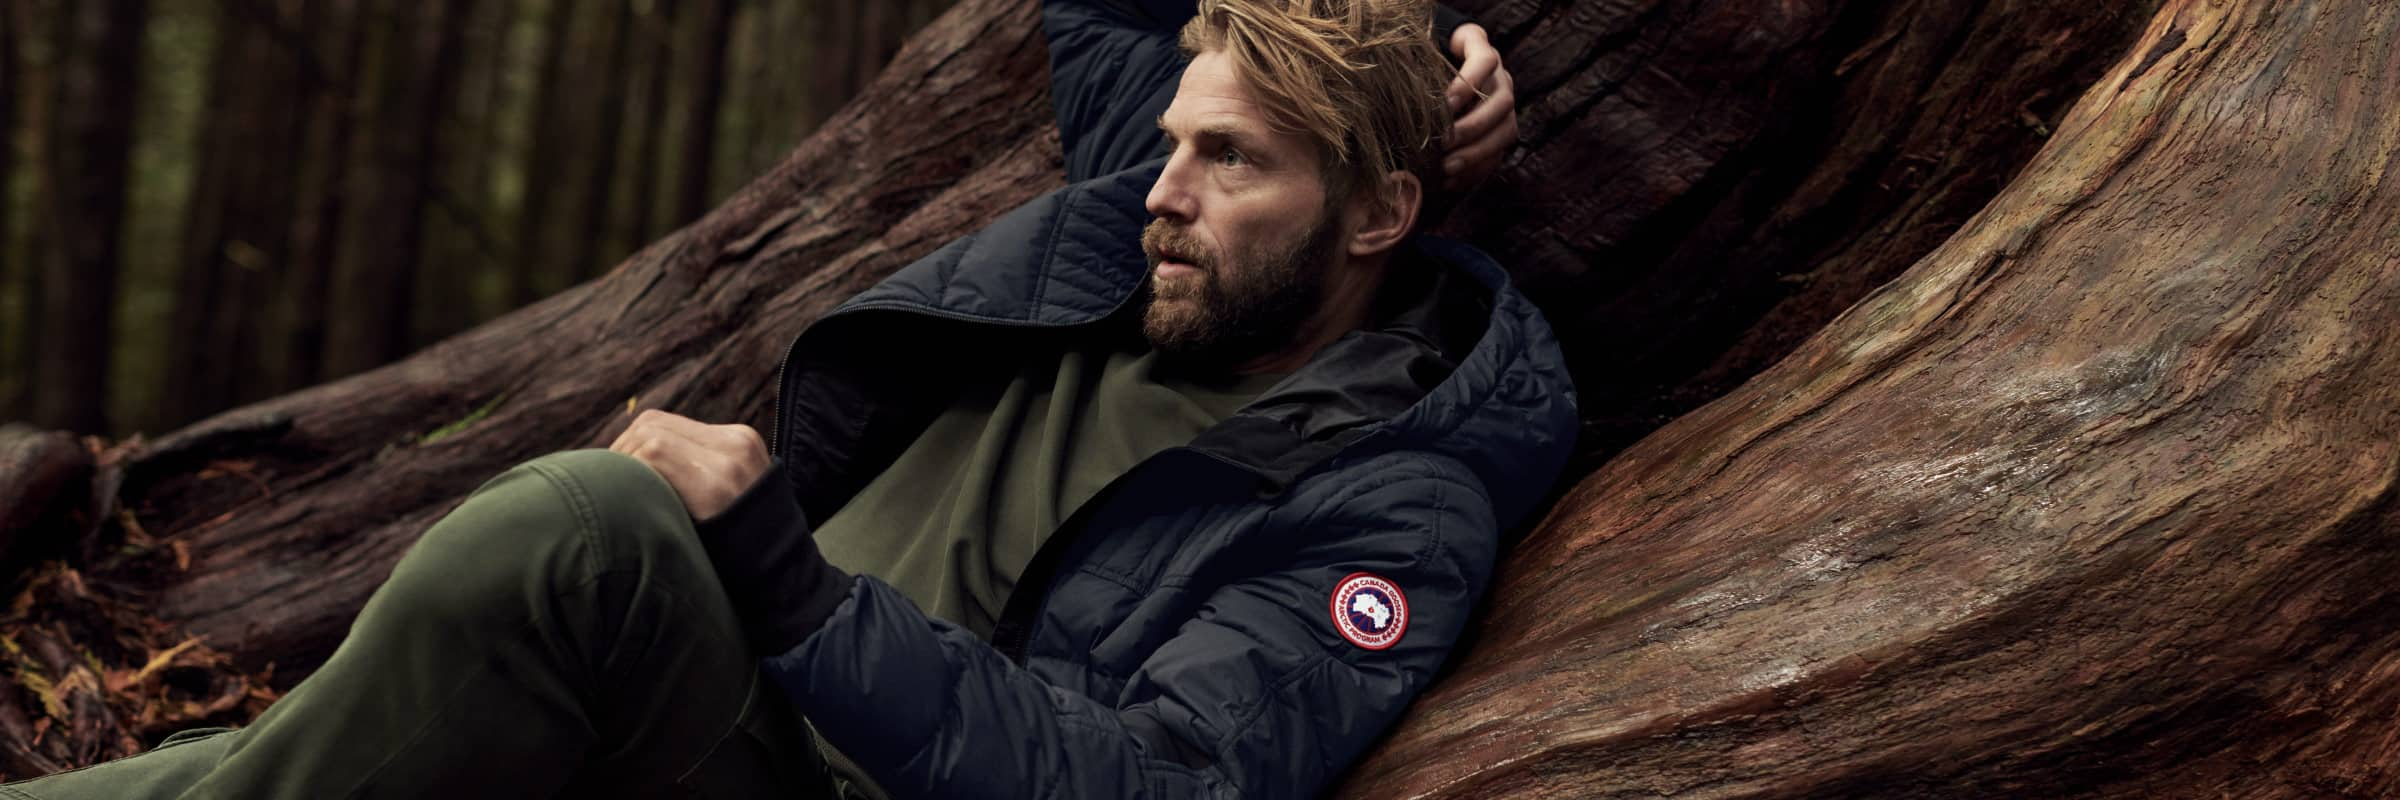 Discover the Canada Goose 2018 Spring/Summer Collection